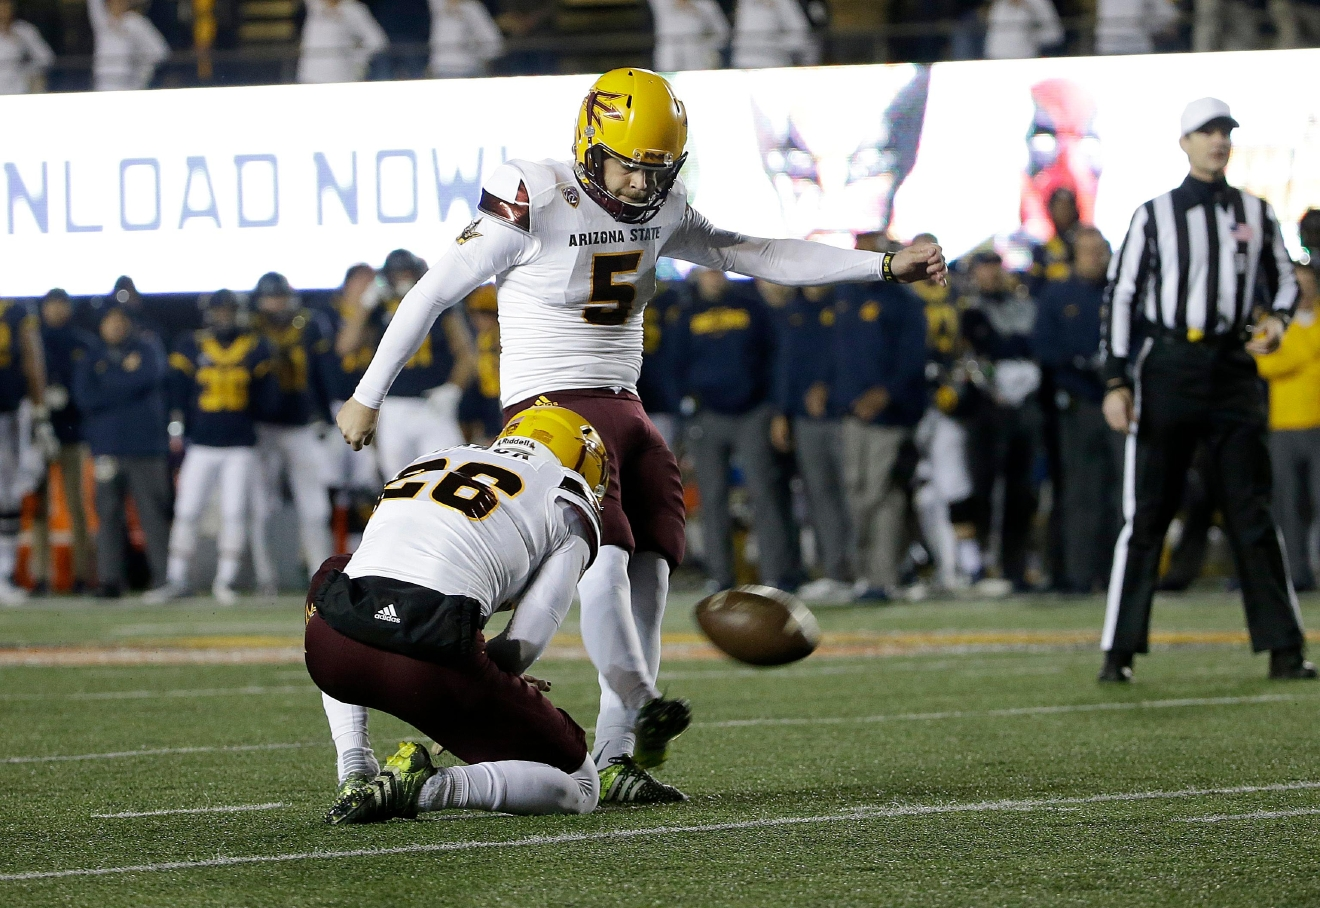 FILE - In this Nov. 28, 2015, file photo, Arizona State place kicker Zane Gonzalez (5) kicks a field goal during the first half of of an NCAA college football game against California in Berkeley, Calif. Gonzalez was selected to the 2016 AP All-America college football team, Monday, Dec. 12, 2016.  (AP Photo/Jeff Chiu, File)